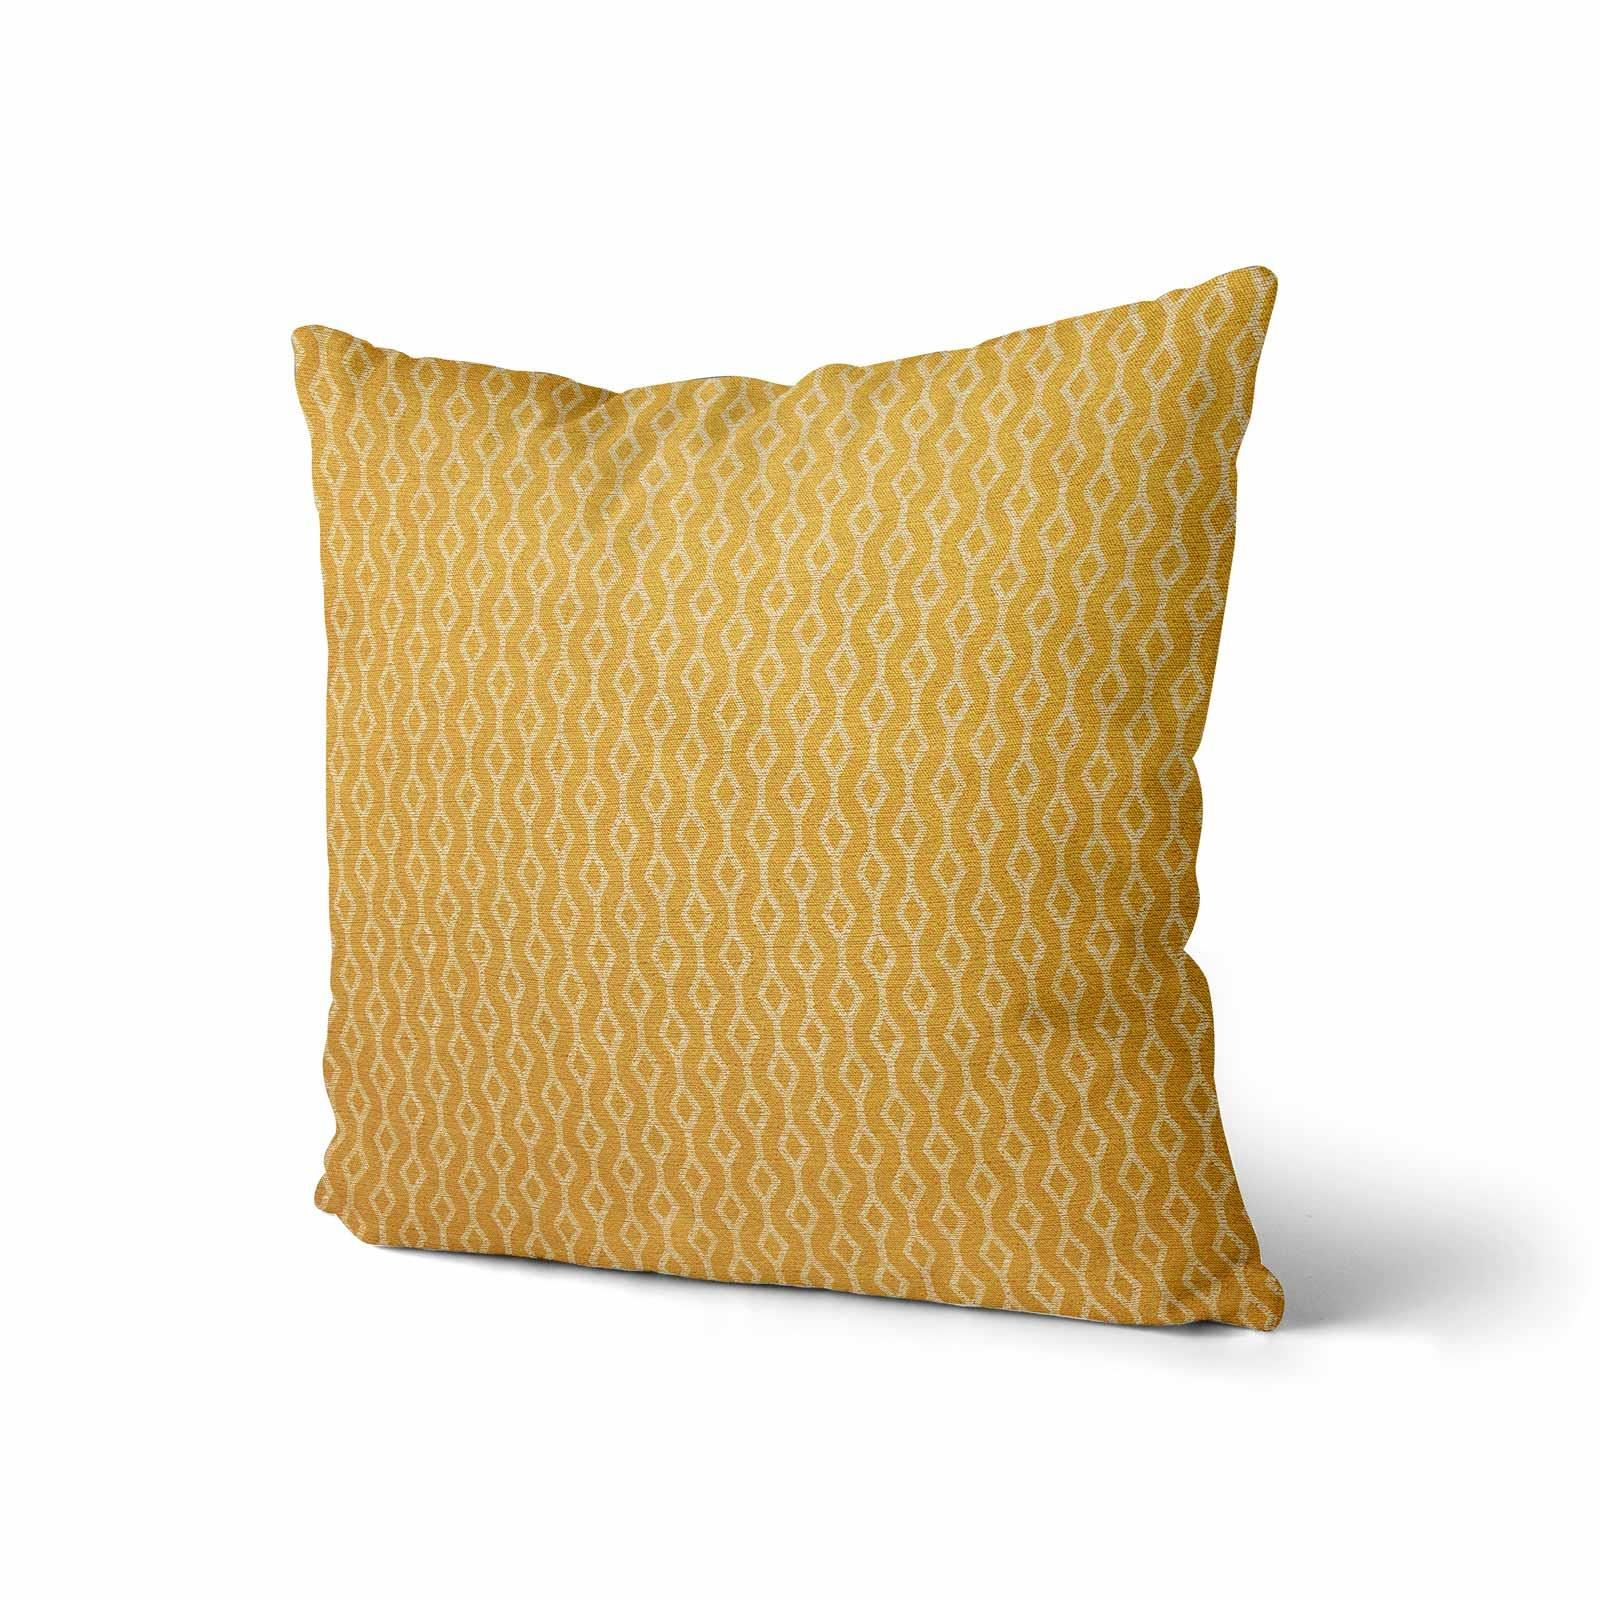 Grey-Ochre-Mustard-Cushion-Cover-Collection-17-034-18-034-Covers-Filled-Cushions thumbnail 89